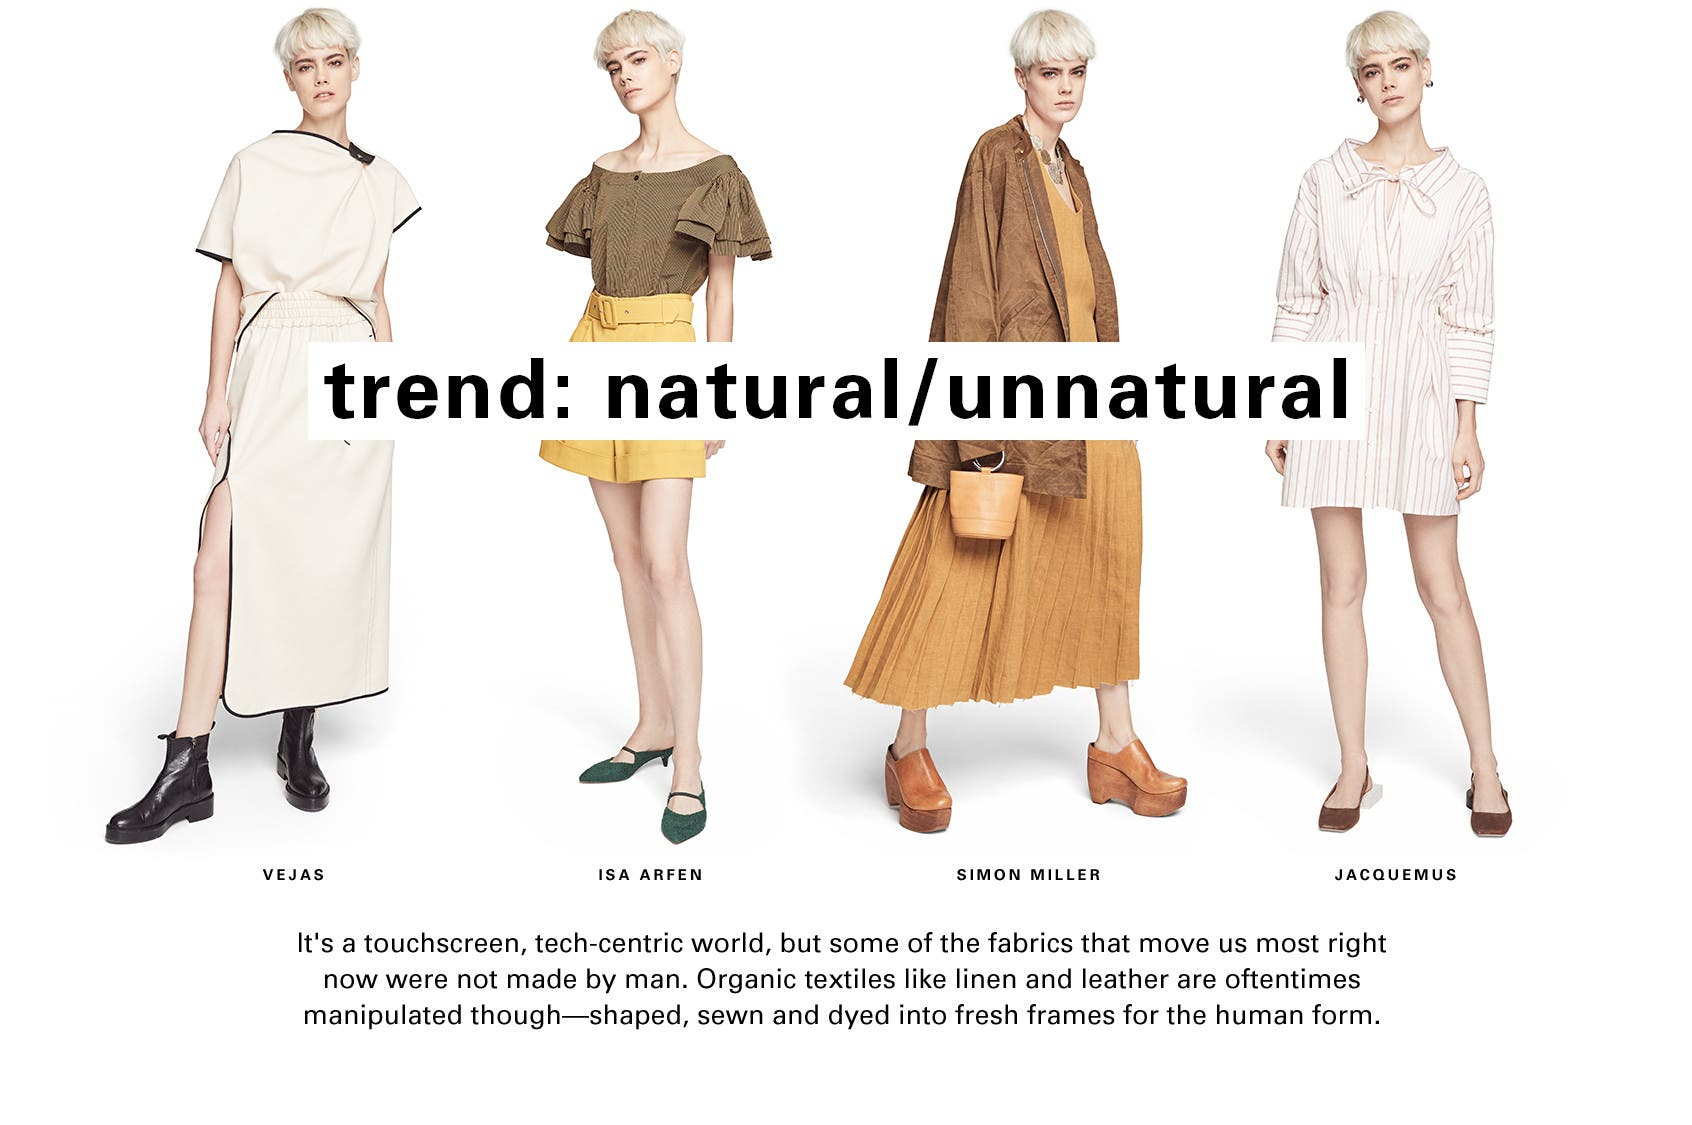 Spring trend from emerging designers: natural/unnatural. Mix organic and manmade materials.